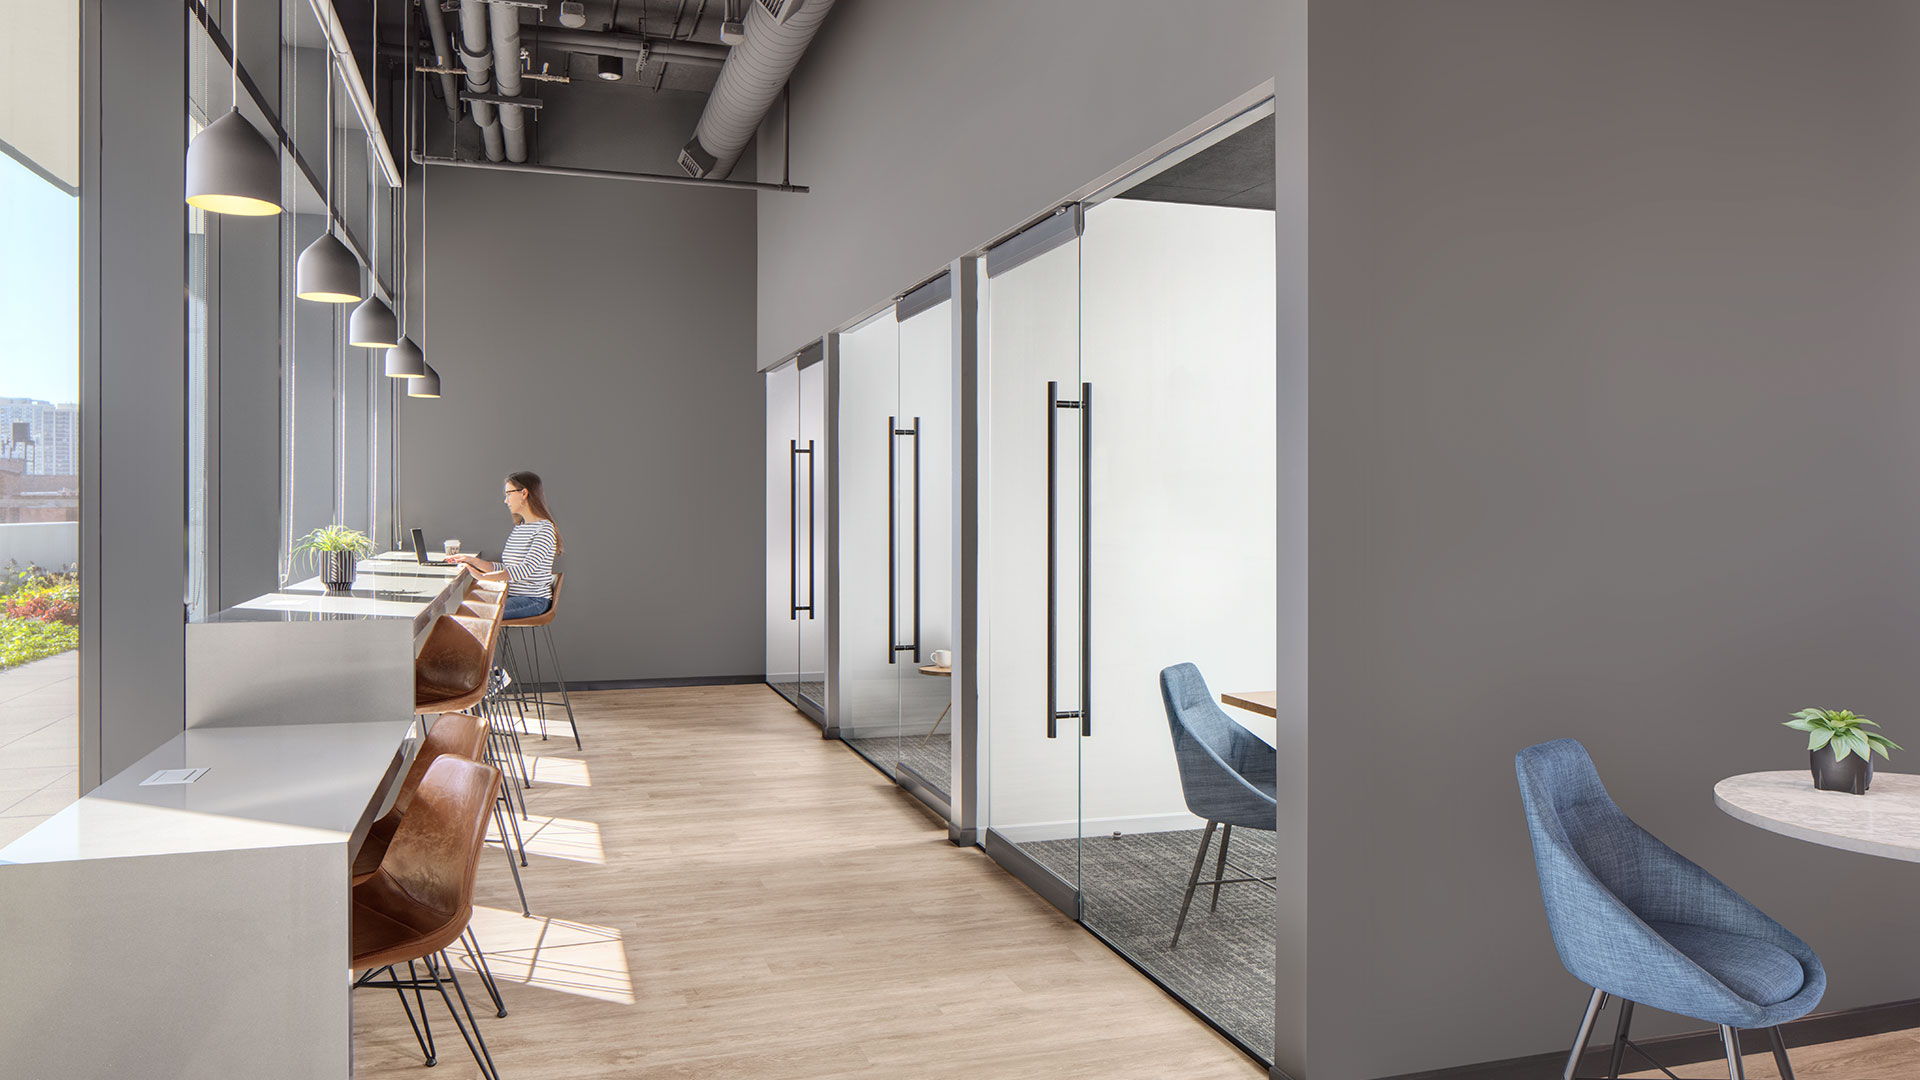 Looking down the row of private work spaces along the right, with glass doors and windows. Along the left open work spaces line the windows; a woman works near the end.